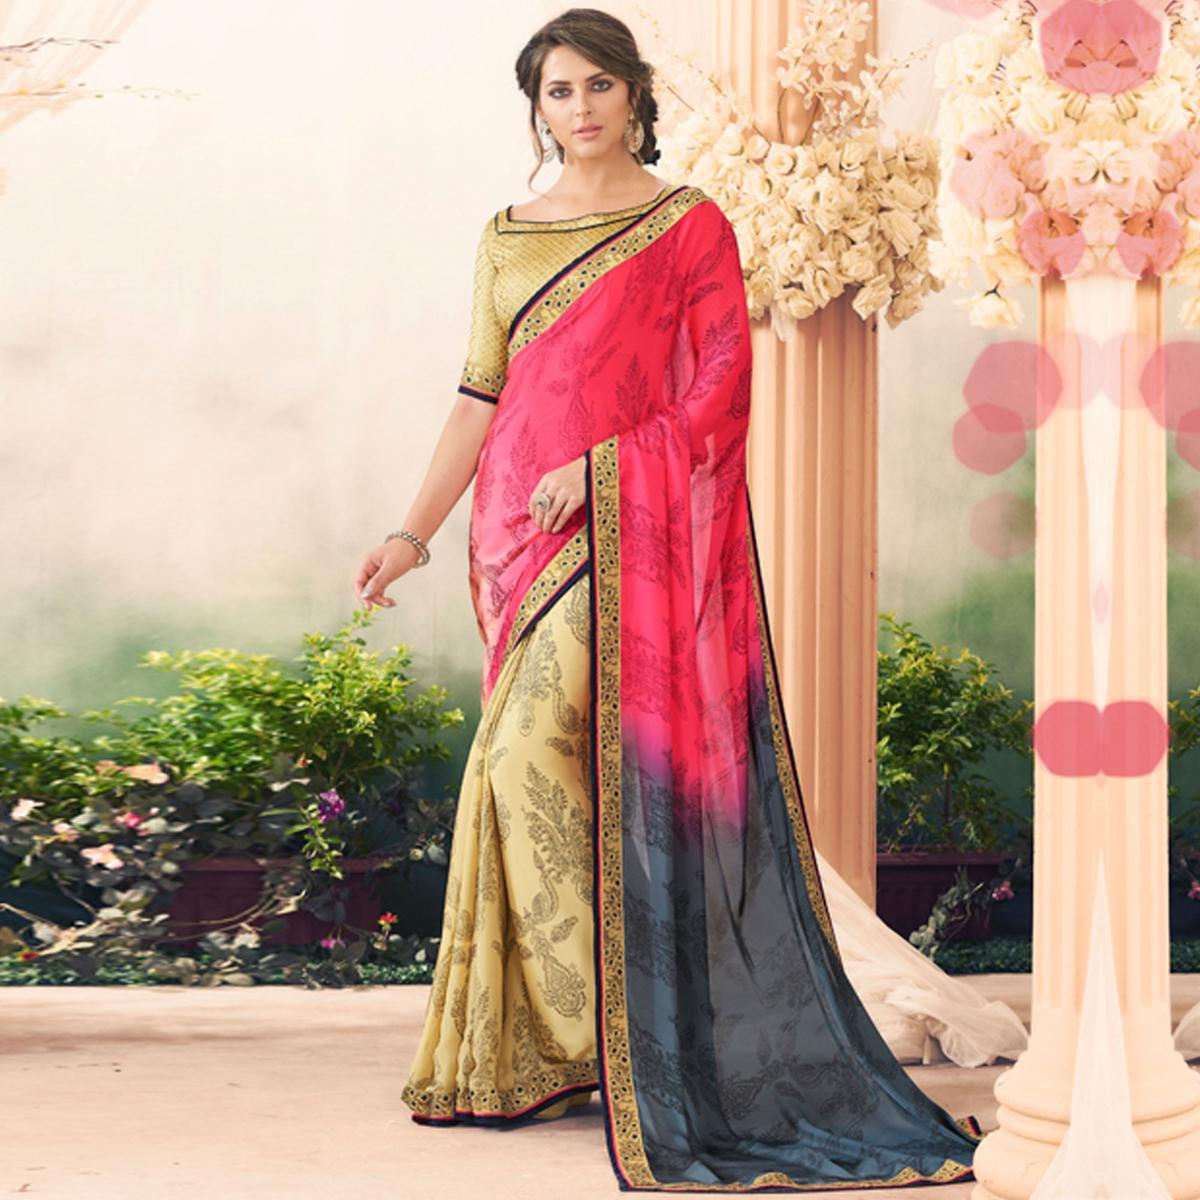 Mesmerising Pink-Beige Colored Casual Printed Art Silk Half-Half Saree